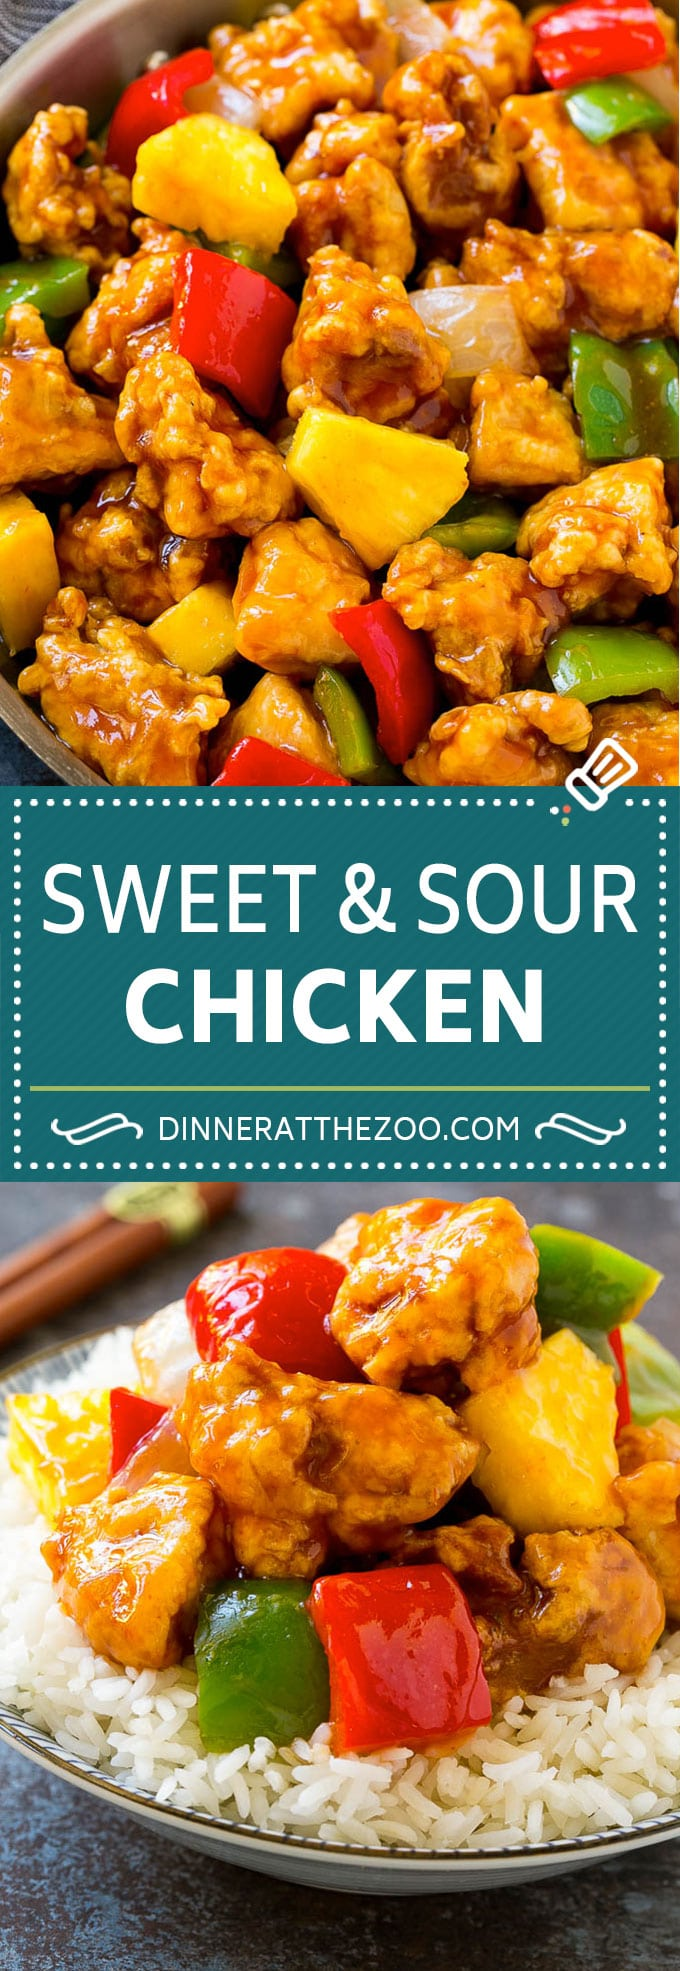 Sweet And Sour Chicken Dinner At The Zoo